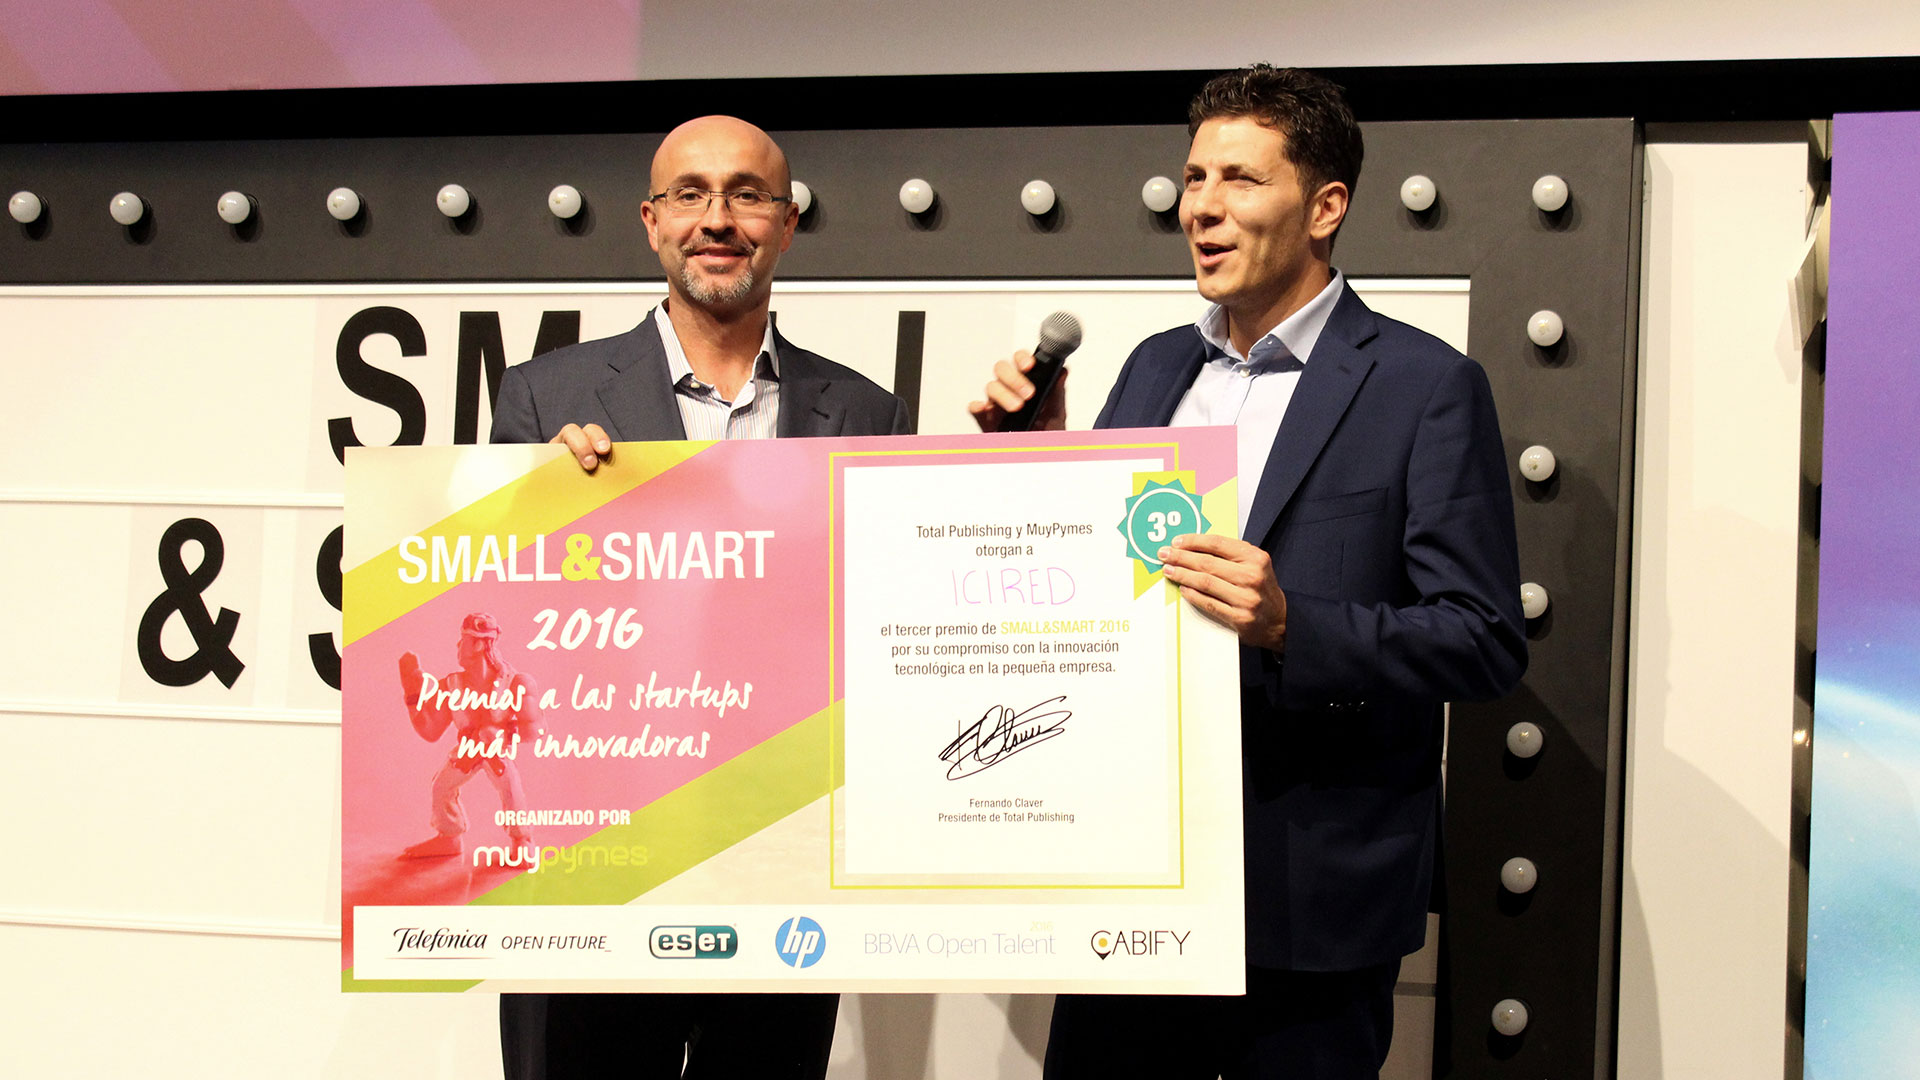 tpnet-small-smart-2016-evento-startups-tercer-premio-icired